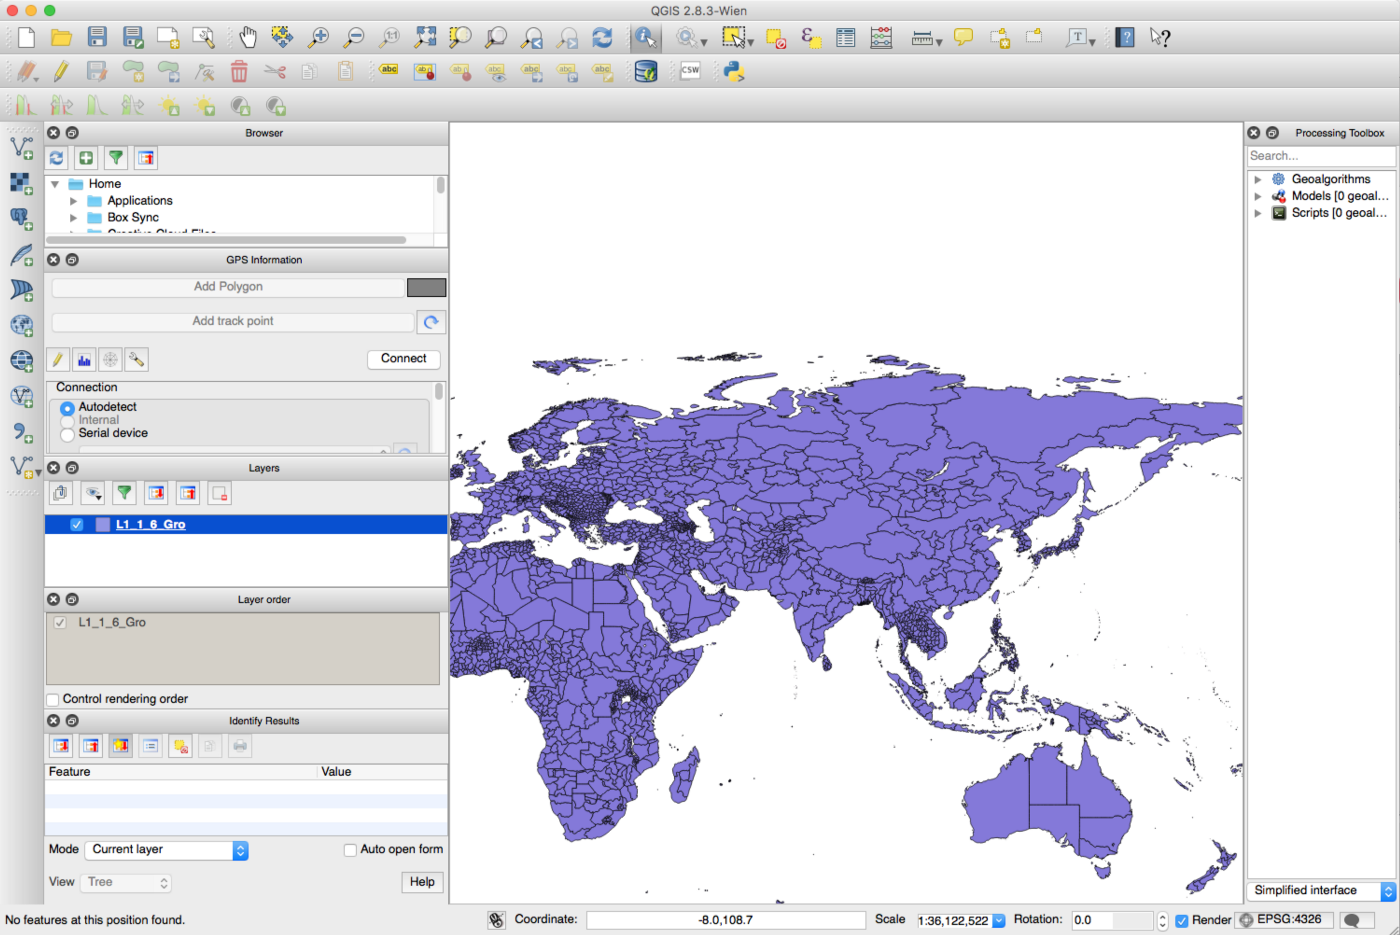 How to create a map visualization by using Tilemill, QGIS and Sketch